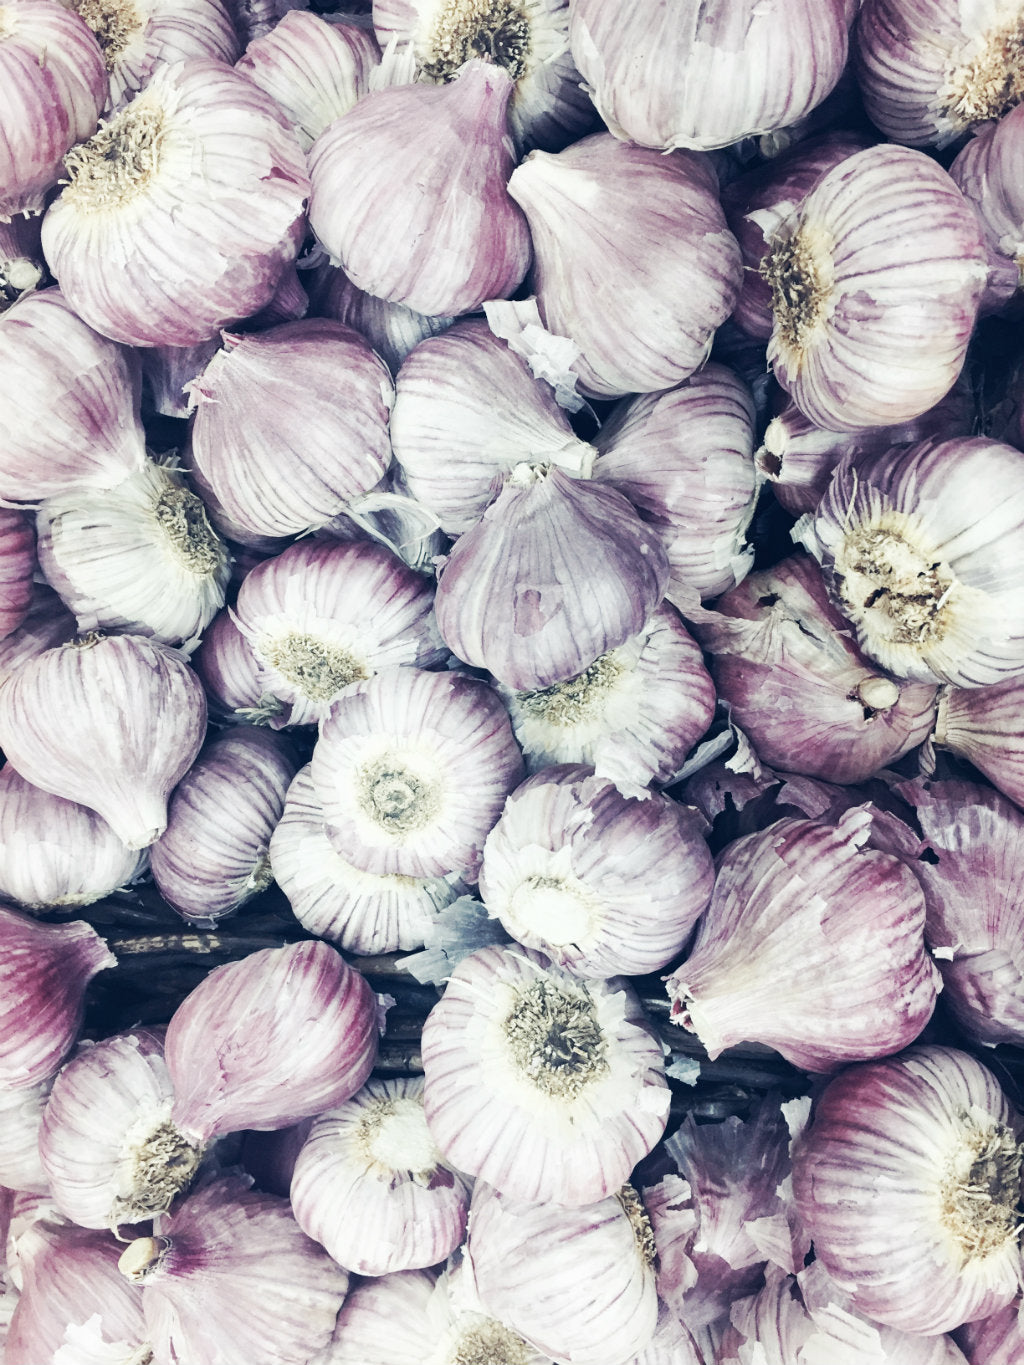 pick of the week - garlic